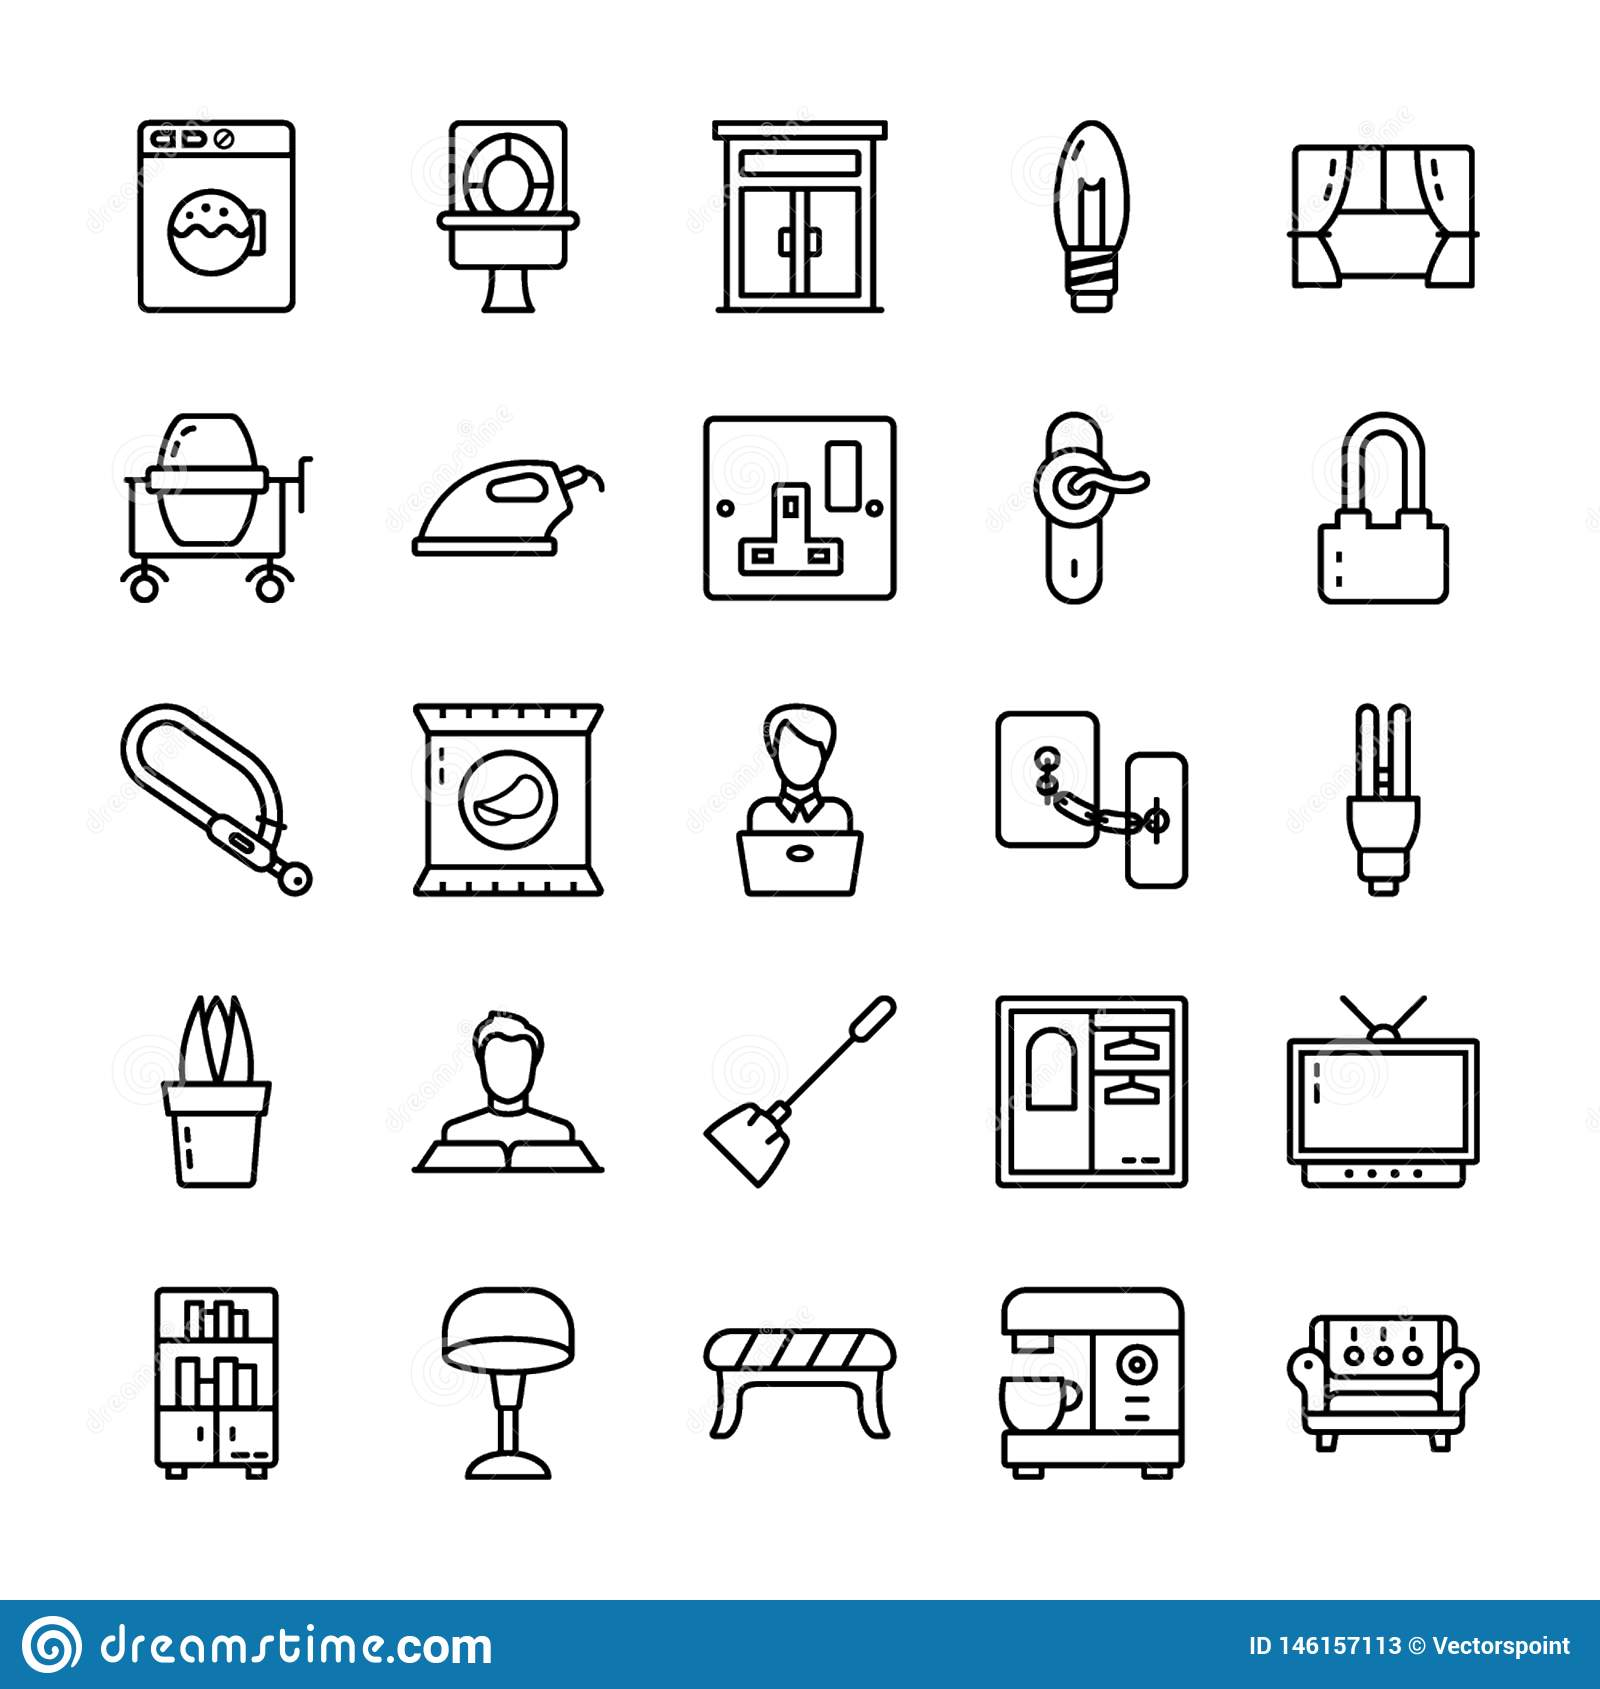 Family and home Line Icons pack